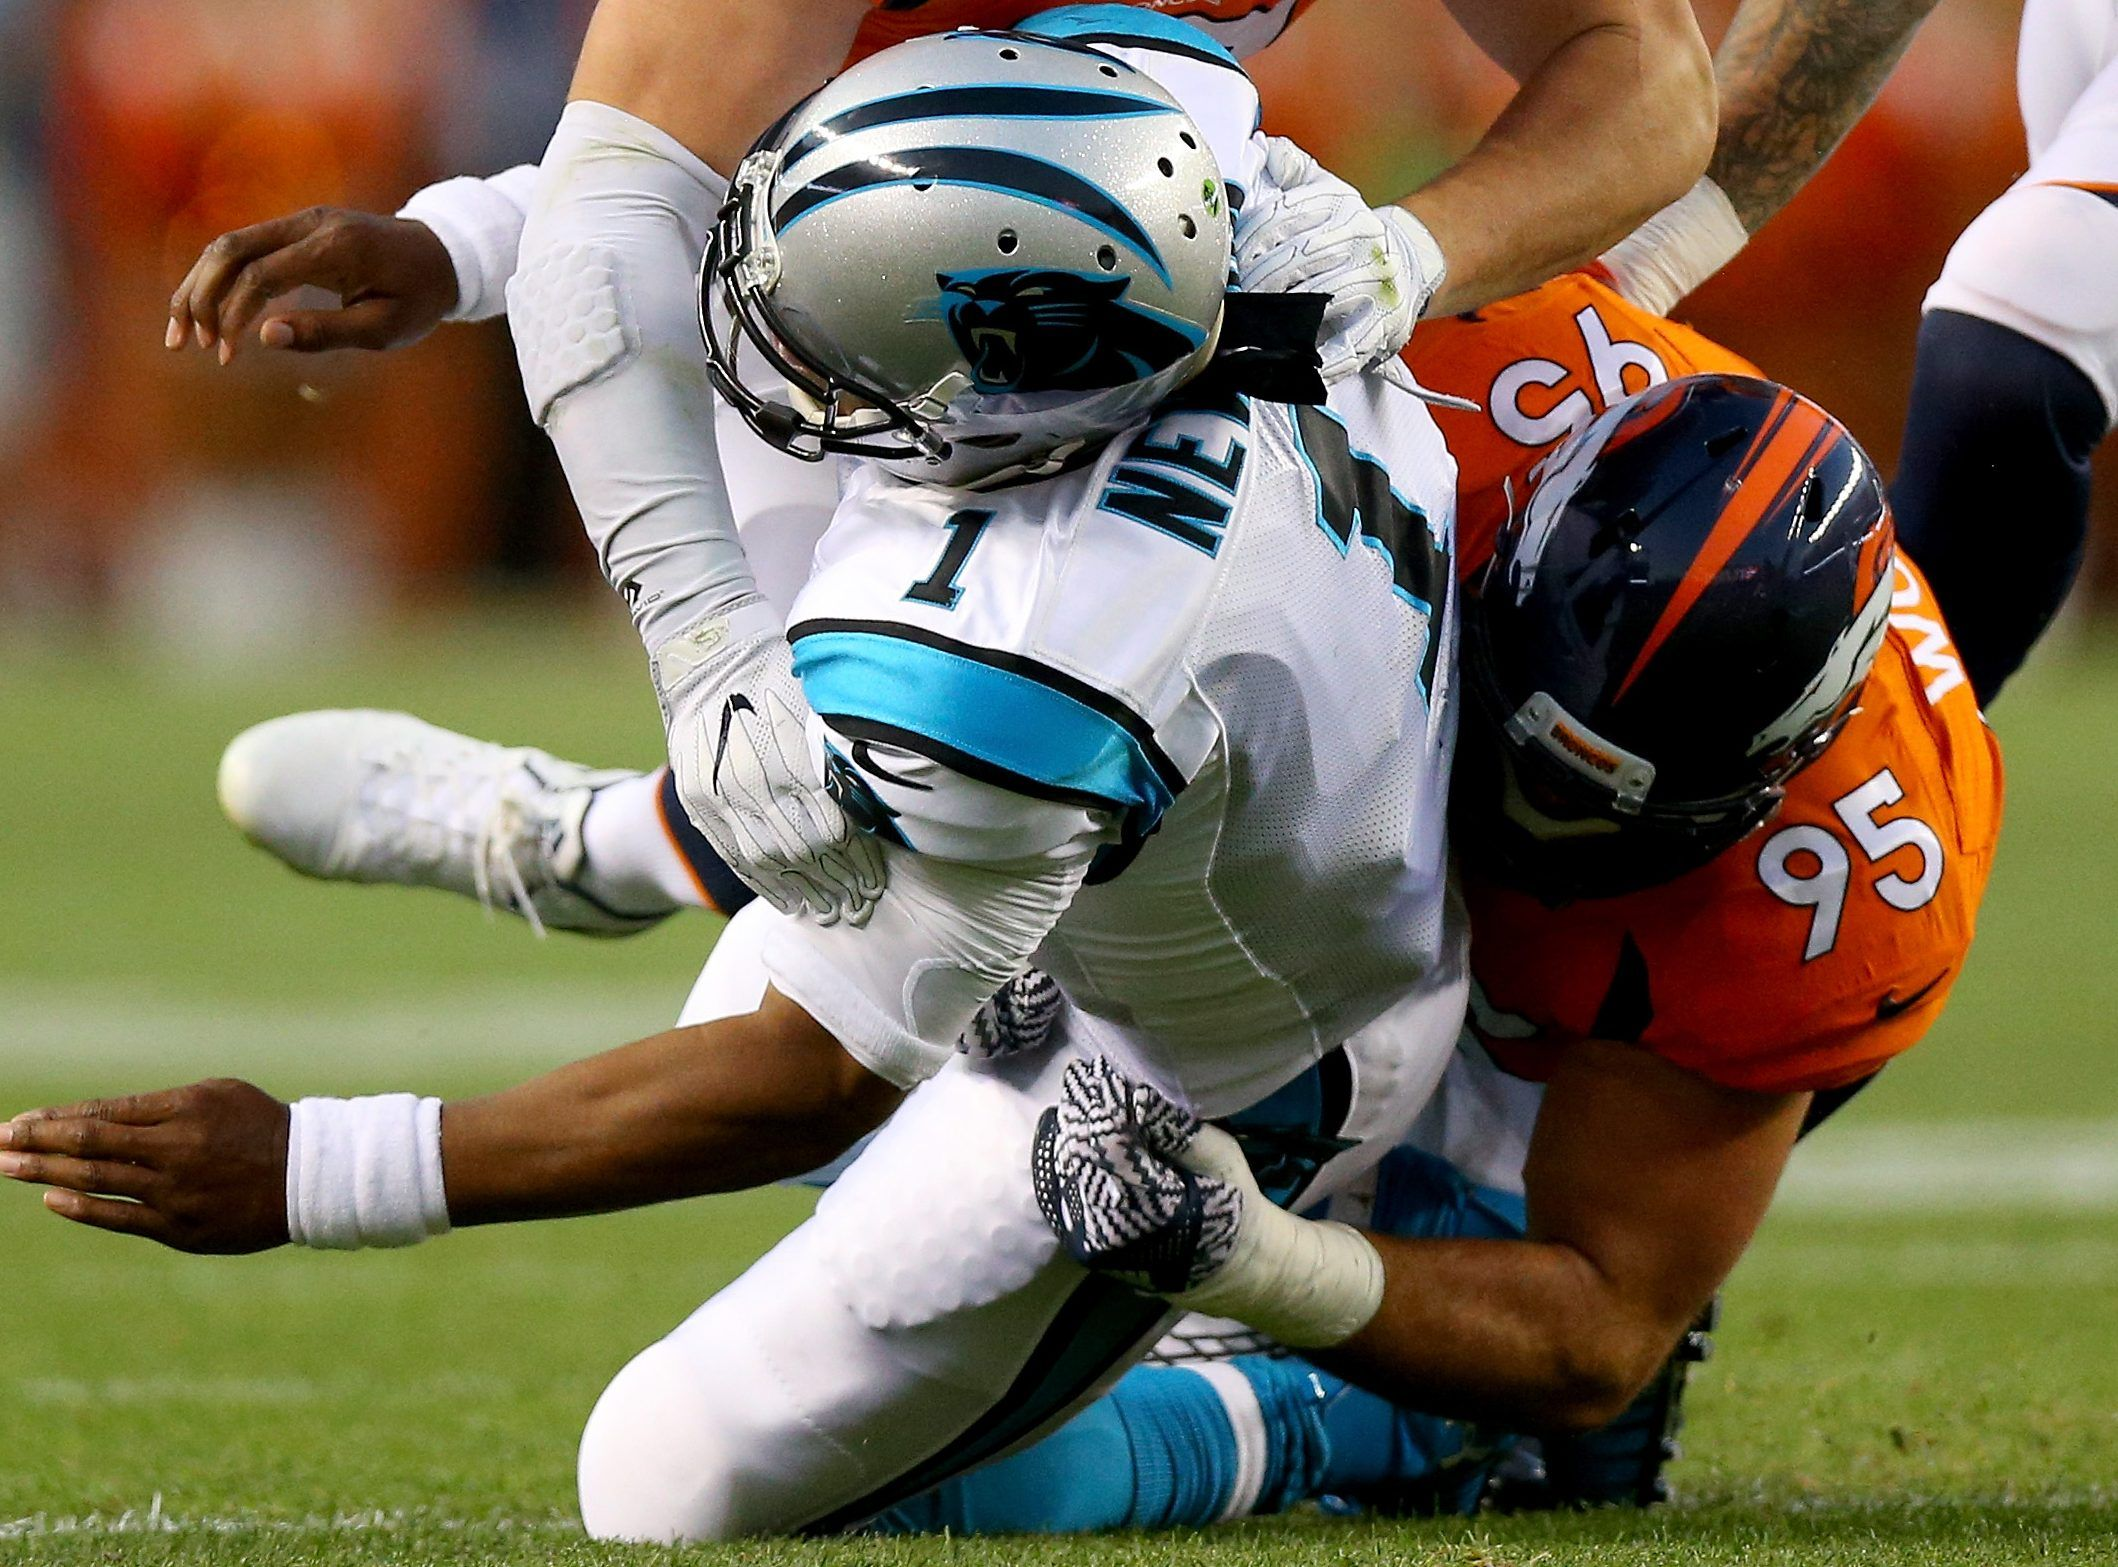 Nfl Morning After Concerning Concussions Nbc Sports Nfl